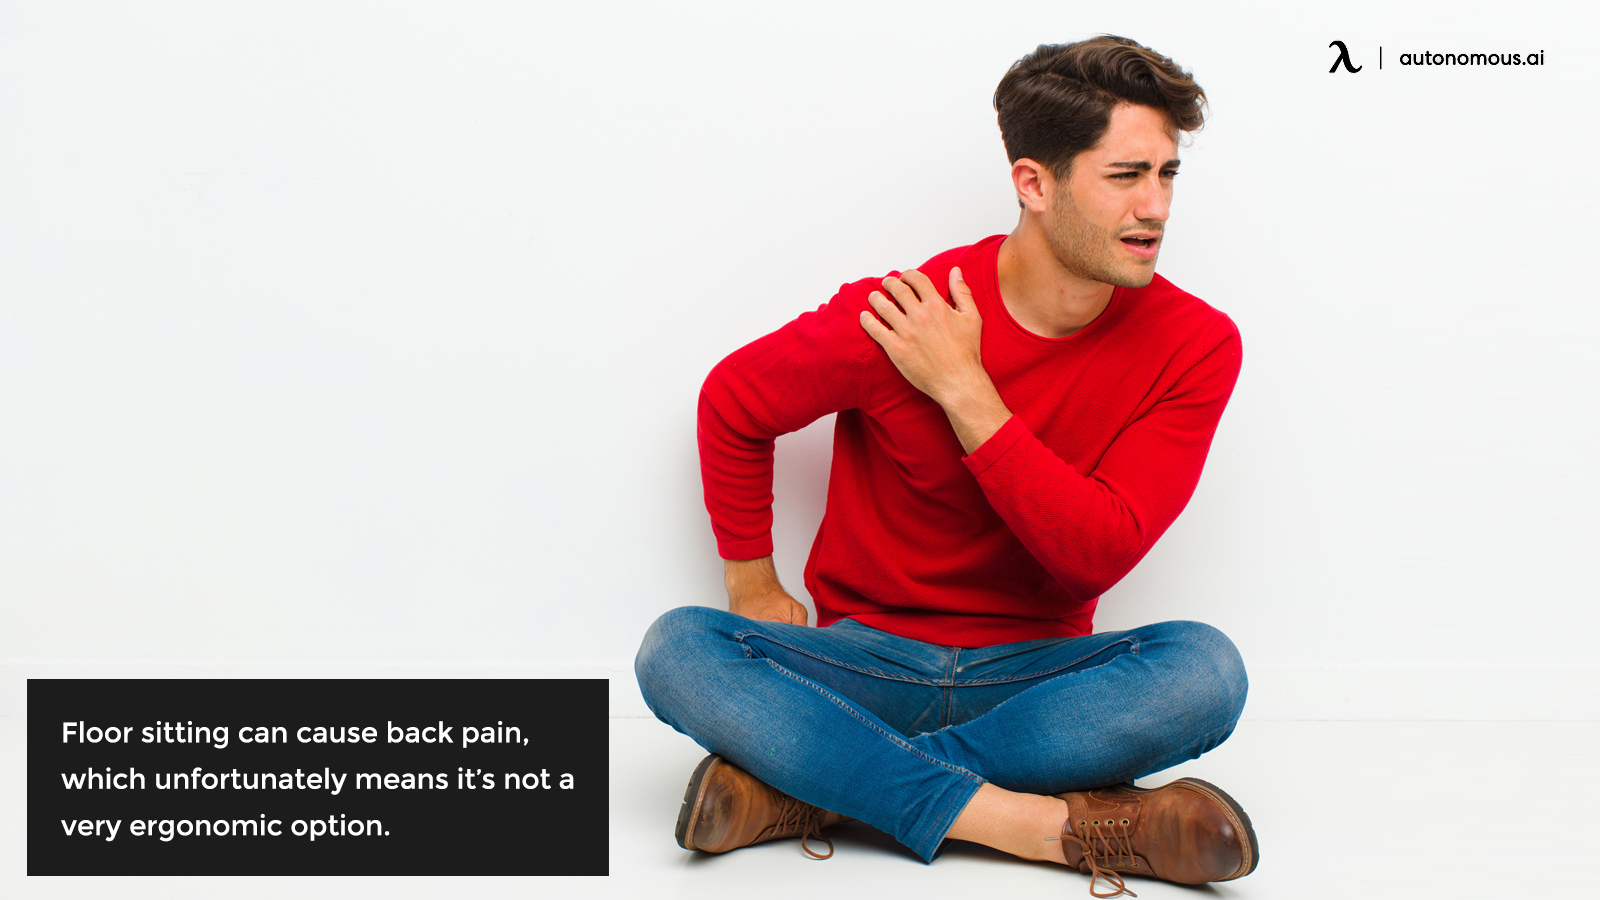 Floor sitting and back pain